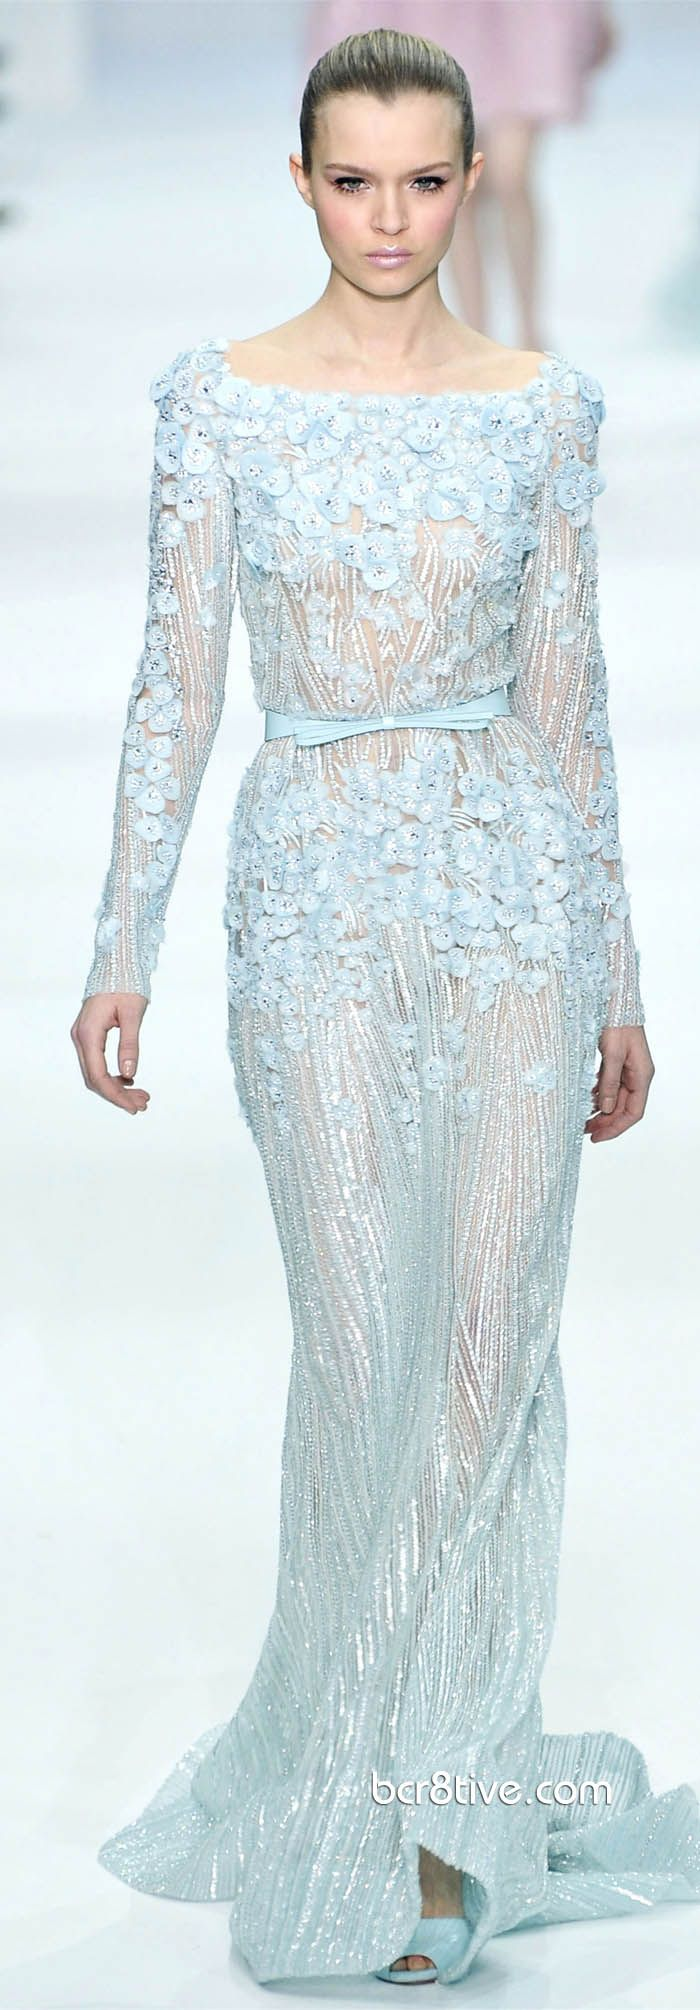 Elie Saab Spring Summer 2012-2013 Haute Couture Blair Waldorf wore this in the series finale as her wedding dress <3